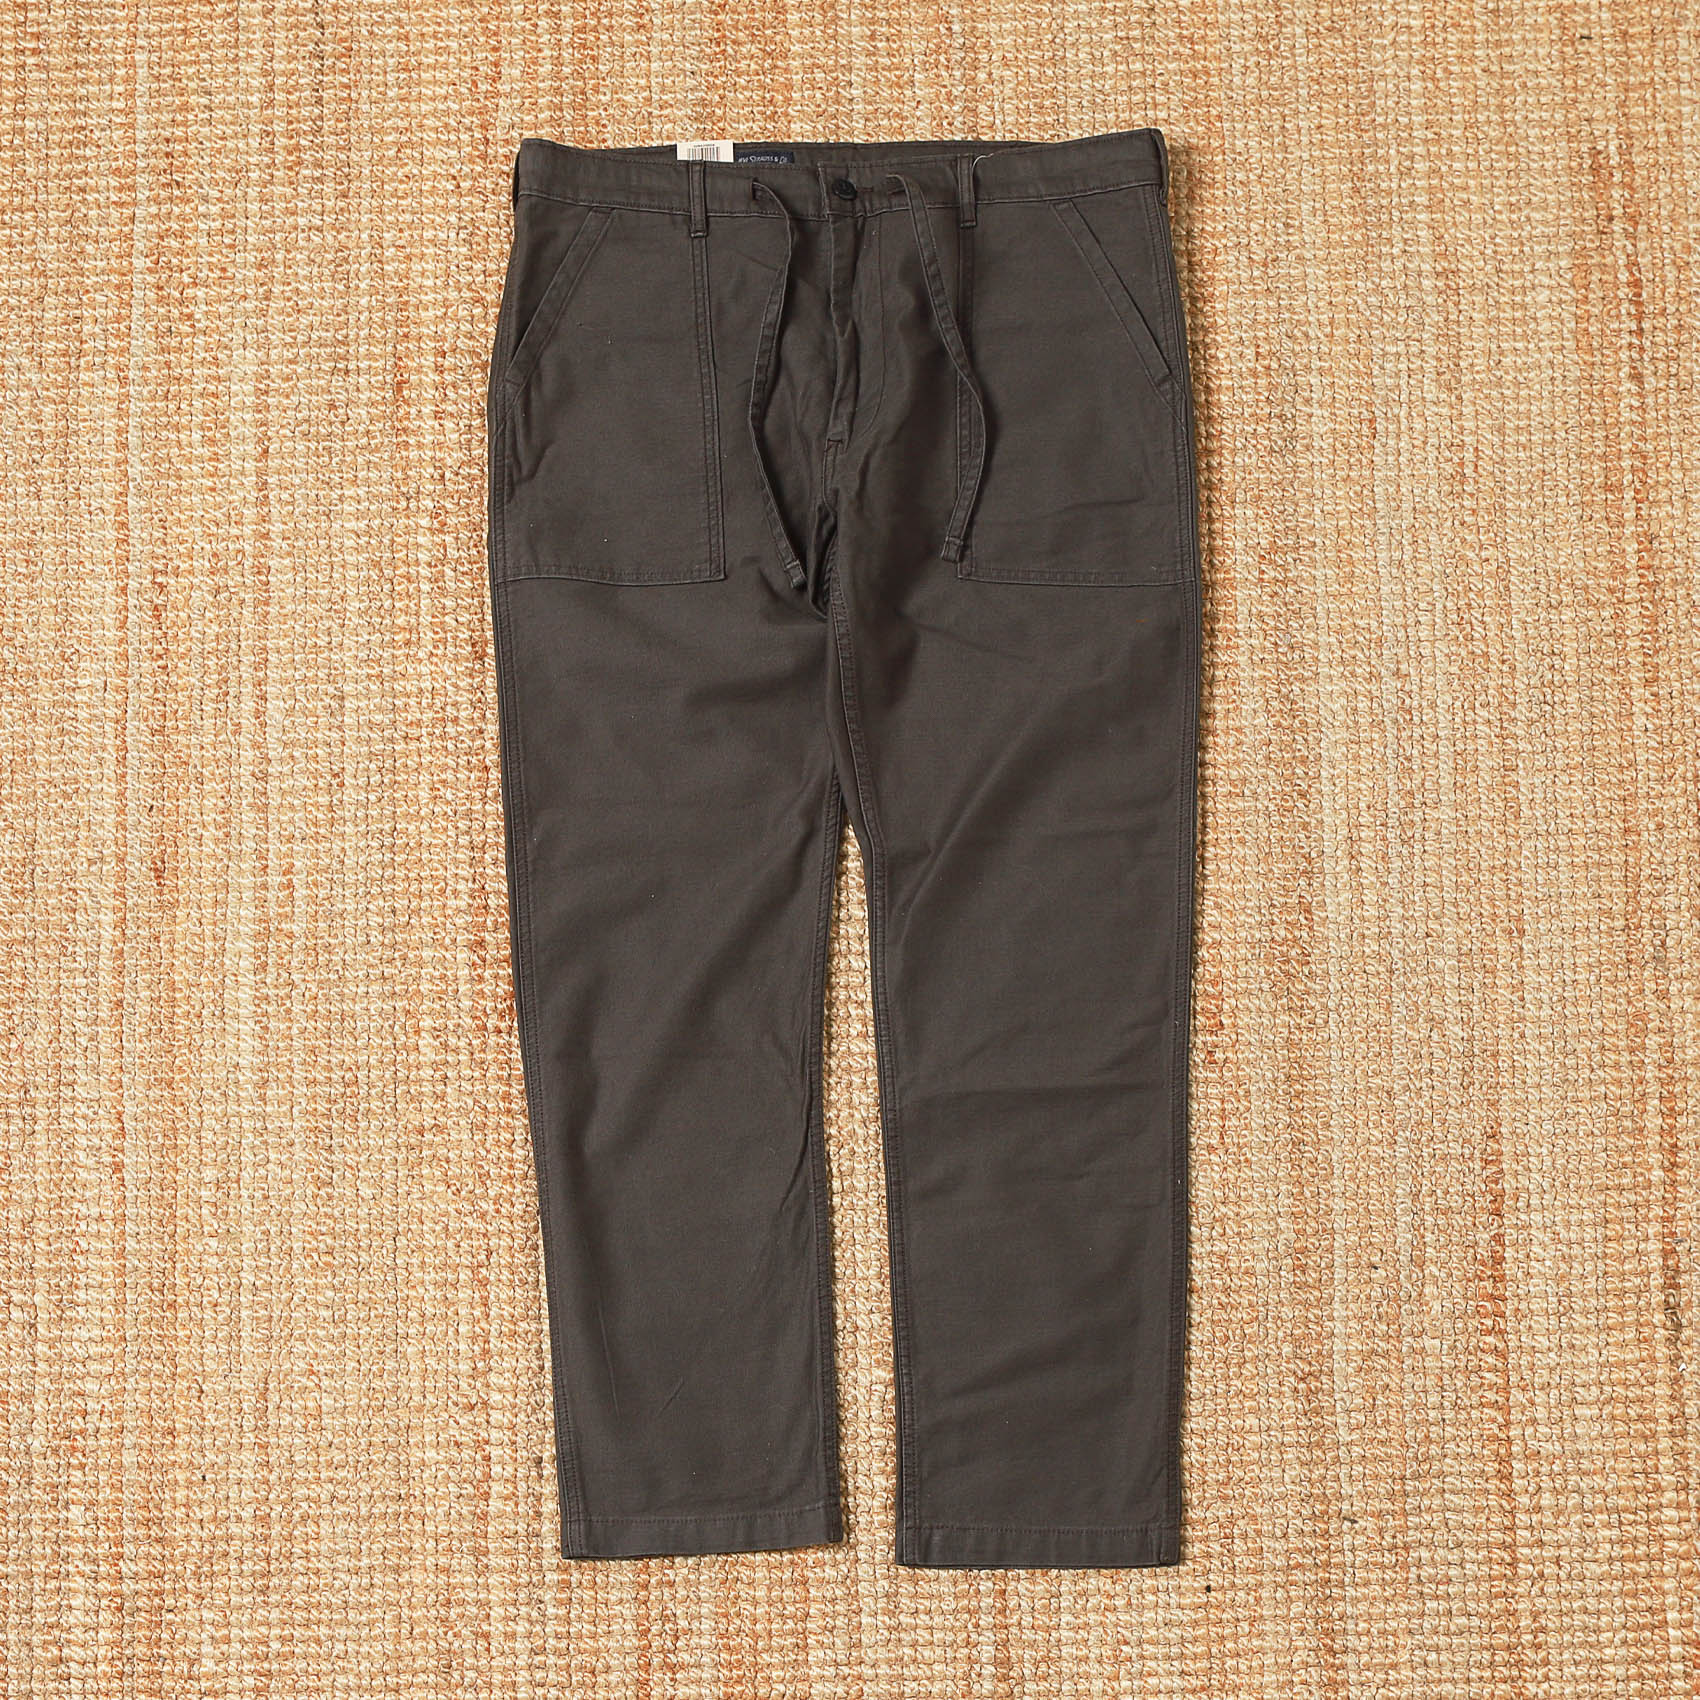 LEVIS FATIGUE PANTS - CHARCOAL